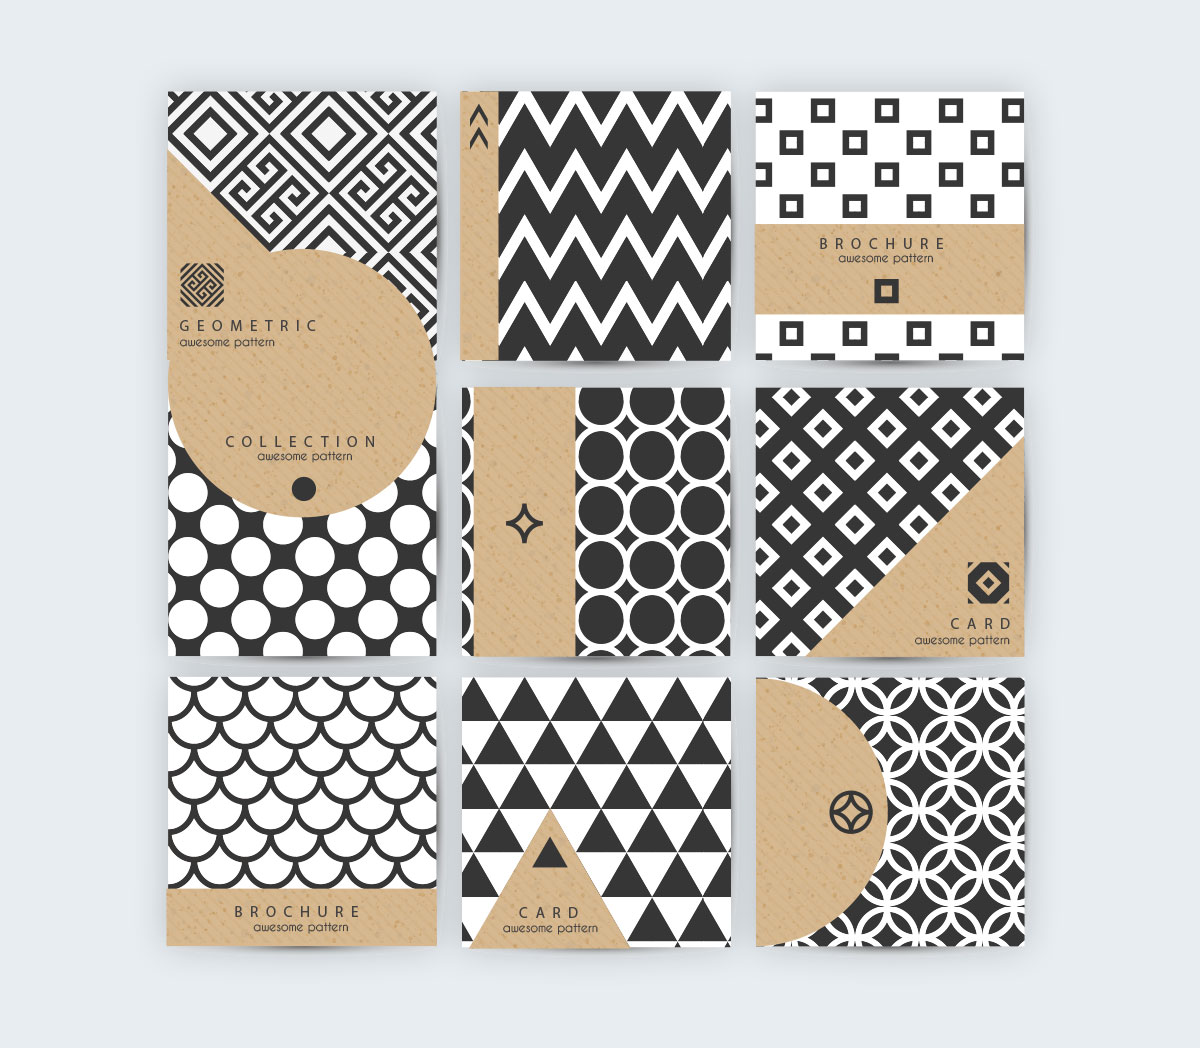 40 Beautiful Geometric Patterns and How to Apply Them to